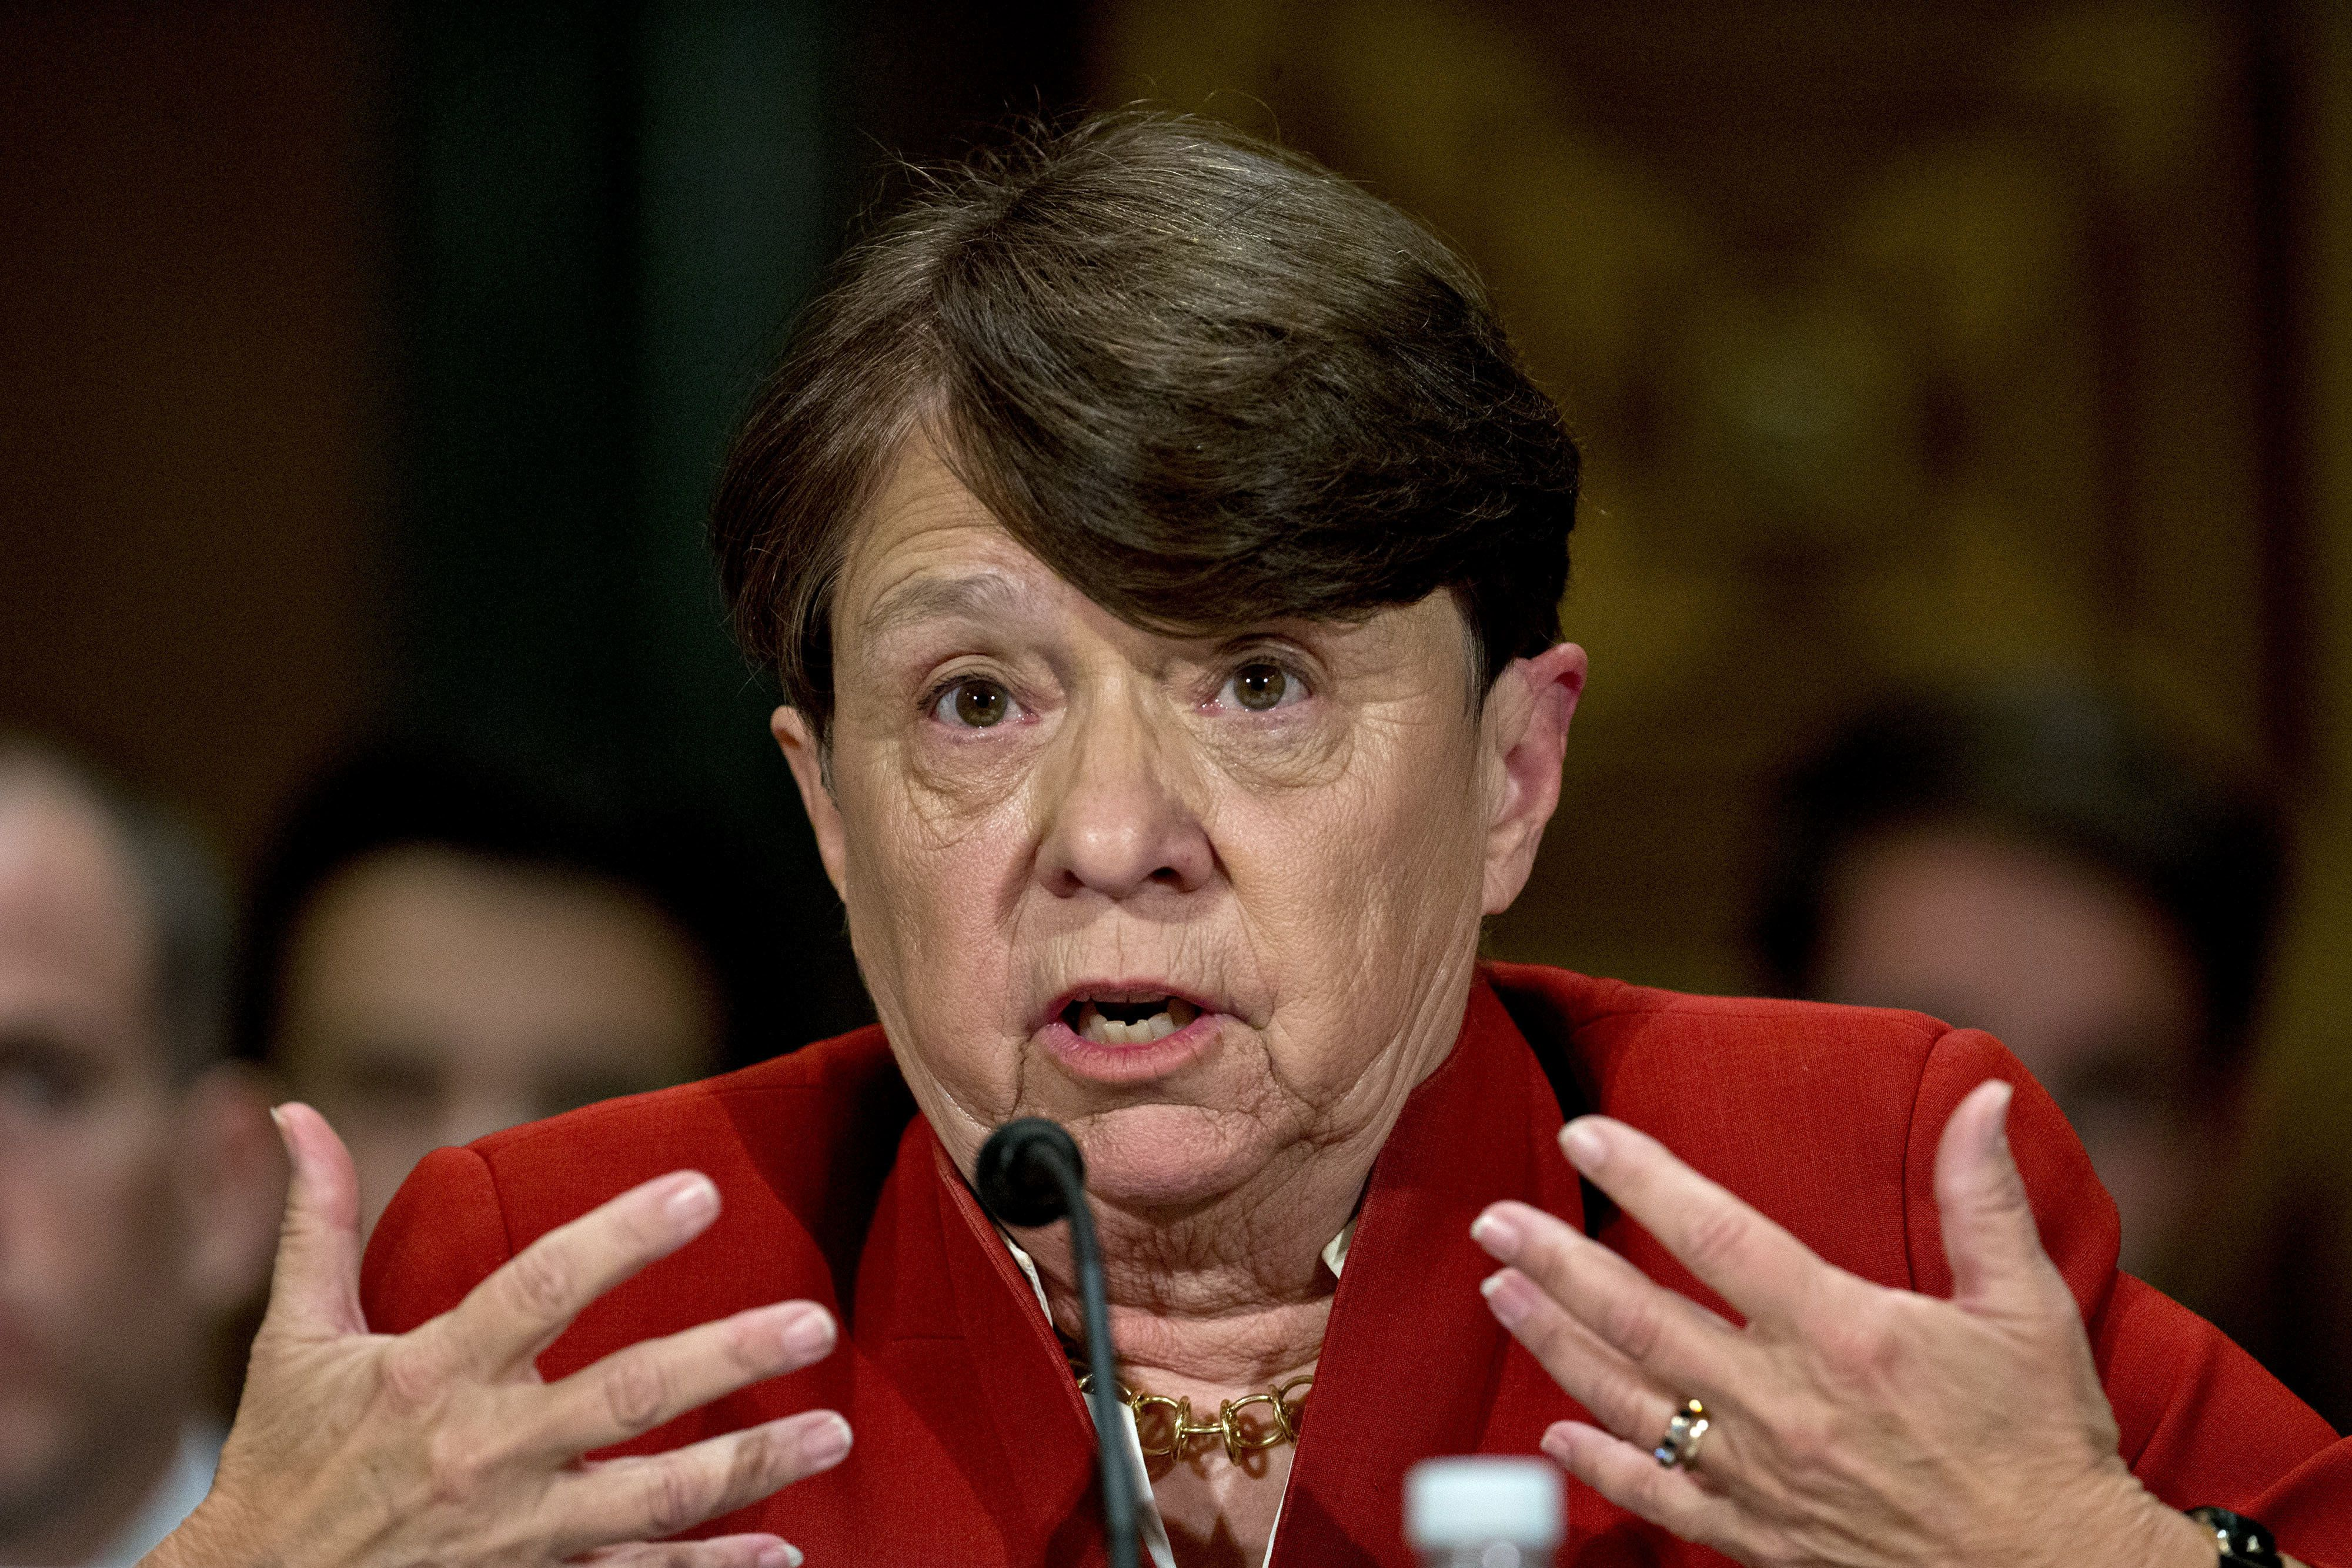 Mary Jo White, chairman of the U.S. Securities and Exchange Commission (SEC), speaks during a Senate Banking, Housing and Urban Affairs Committee hearing in Washington, D.C., U.S., on Tuesday, June 14, 2016. Investment advisers registered with SEC would need to create and maintain transition plans to prepare for a major disruption in their business under rule that will be proposed, White said today. Photographer: Andrew Harrer/Bloomberg via Getty Images